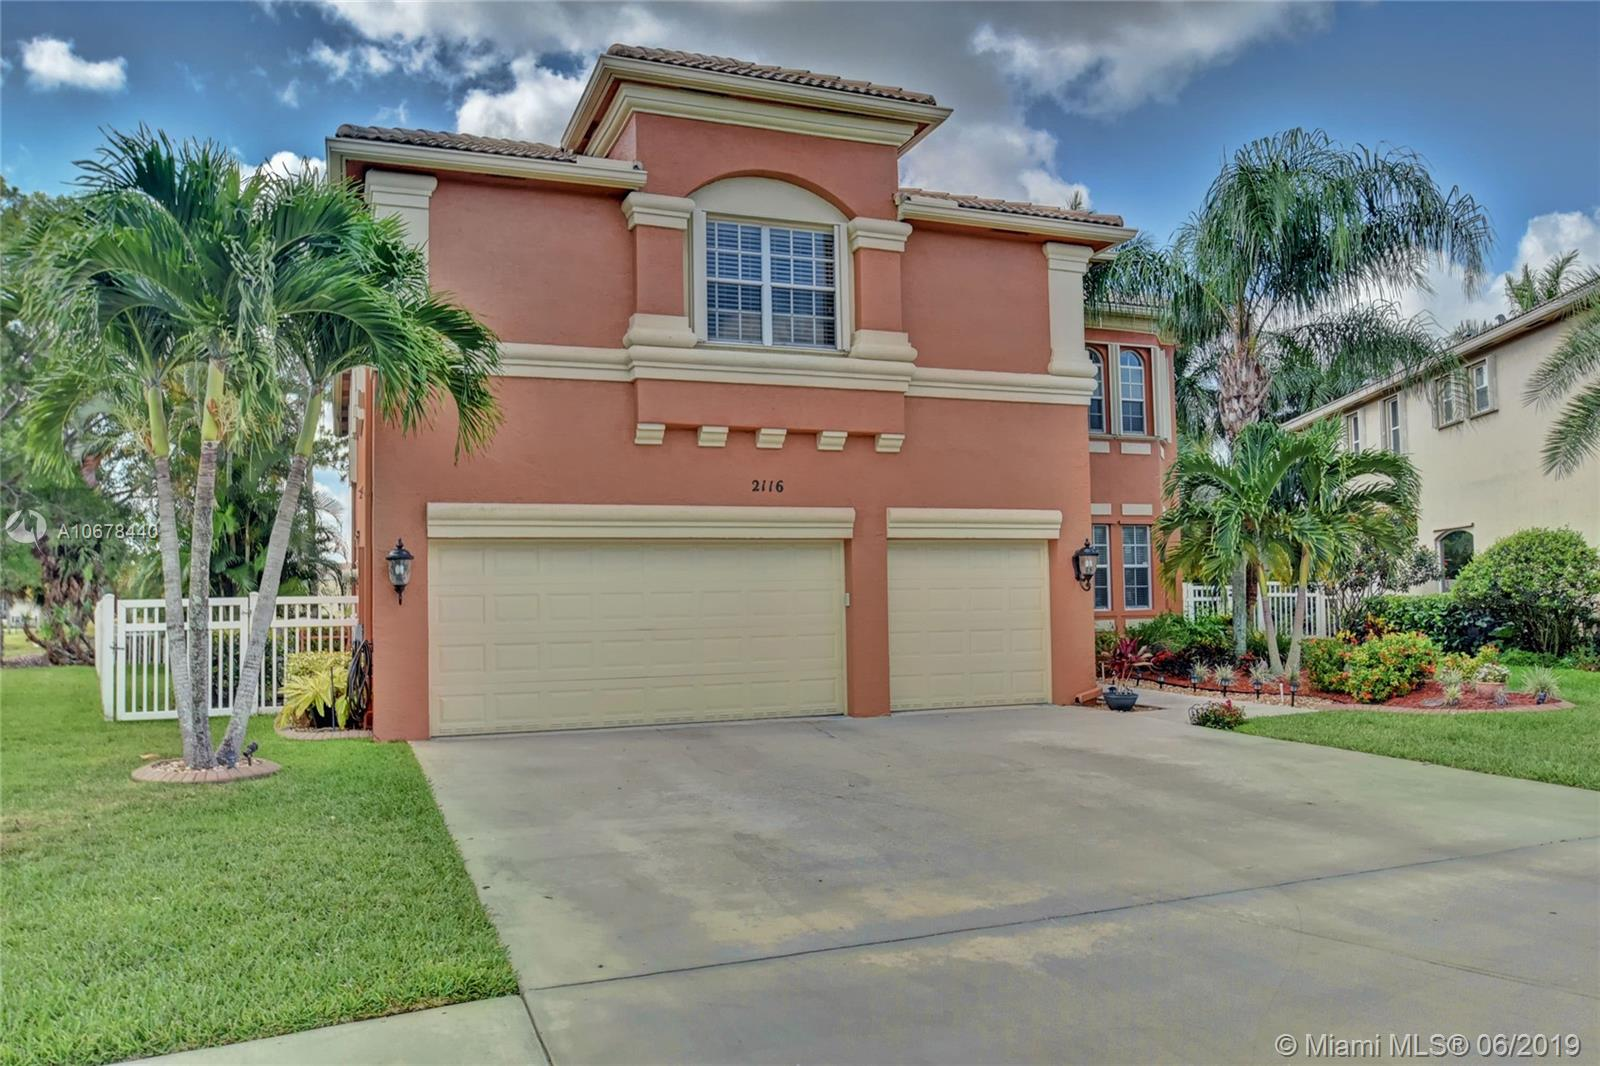 2116 Bellcrest Court, one of homes for sale in Royal Palm Beach